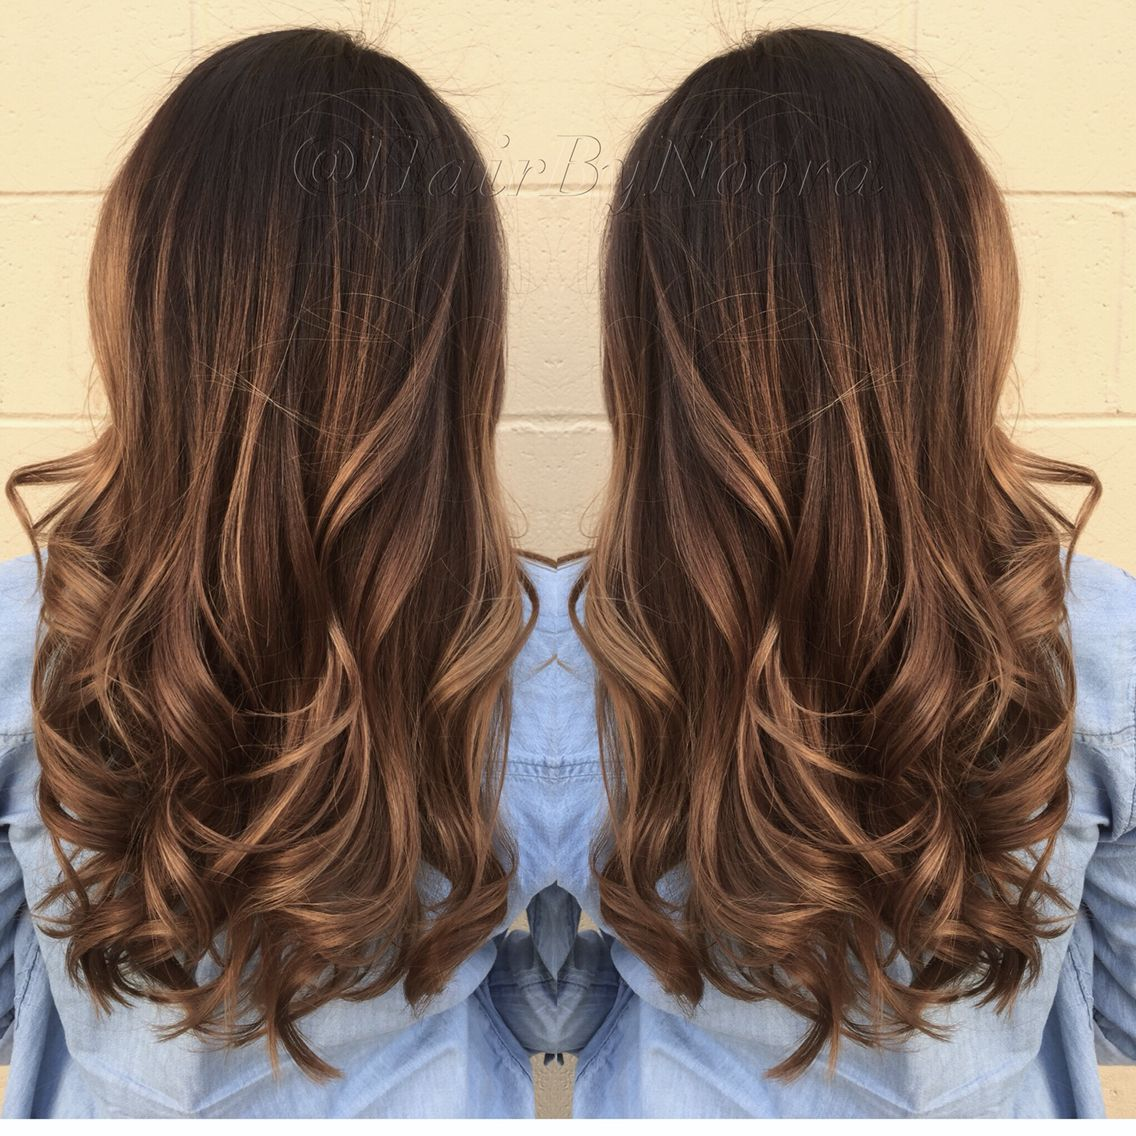 Love This Balayage Wavy Layer Hair Style Not Too Light Or Dark For